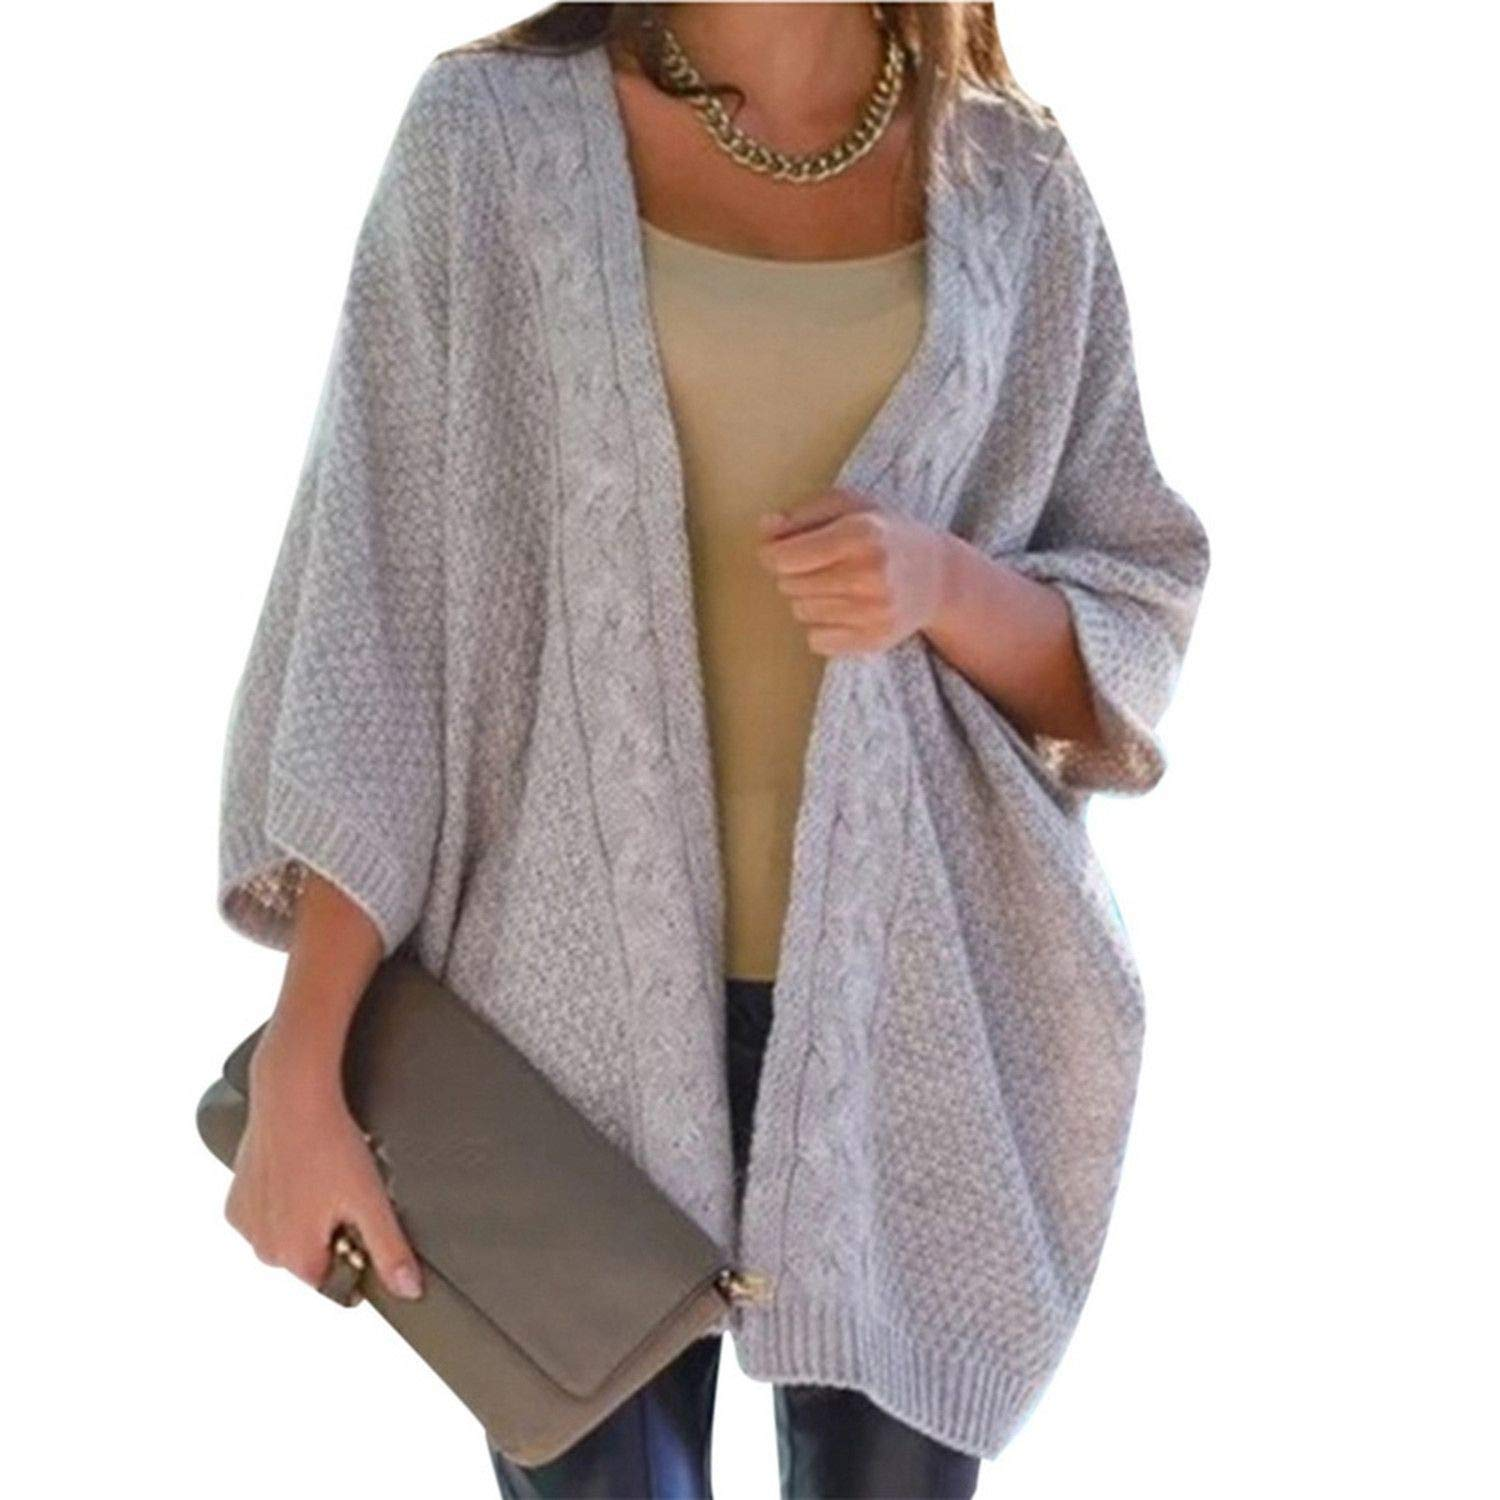 Warm Winter Sweater Women Cardigan Casual Knitting Long Cardigan Female Loose Kimono Cardigan Knitted at Amazon Womens Clothing store: